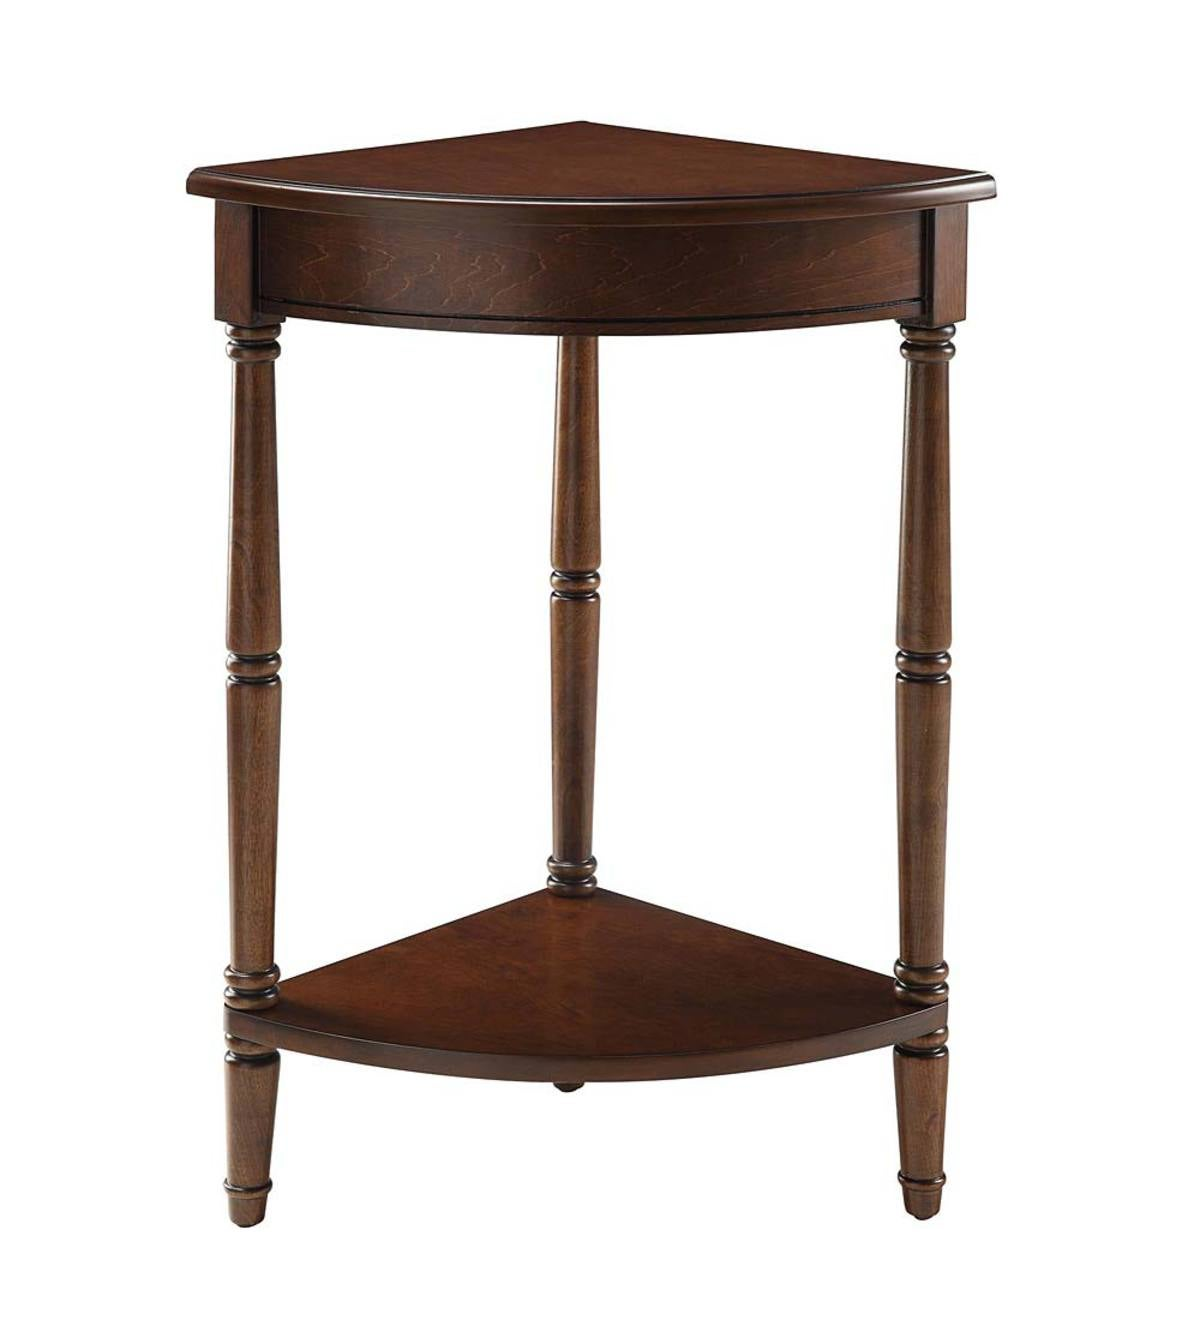 Corner Table/Plant Stand - Cherry